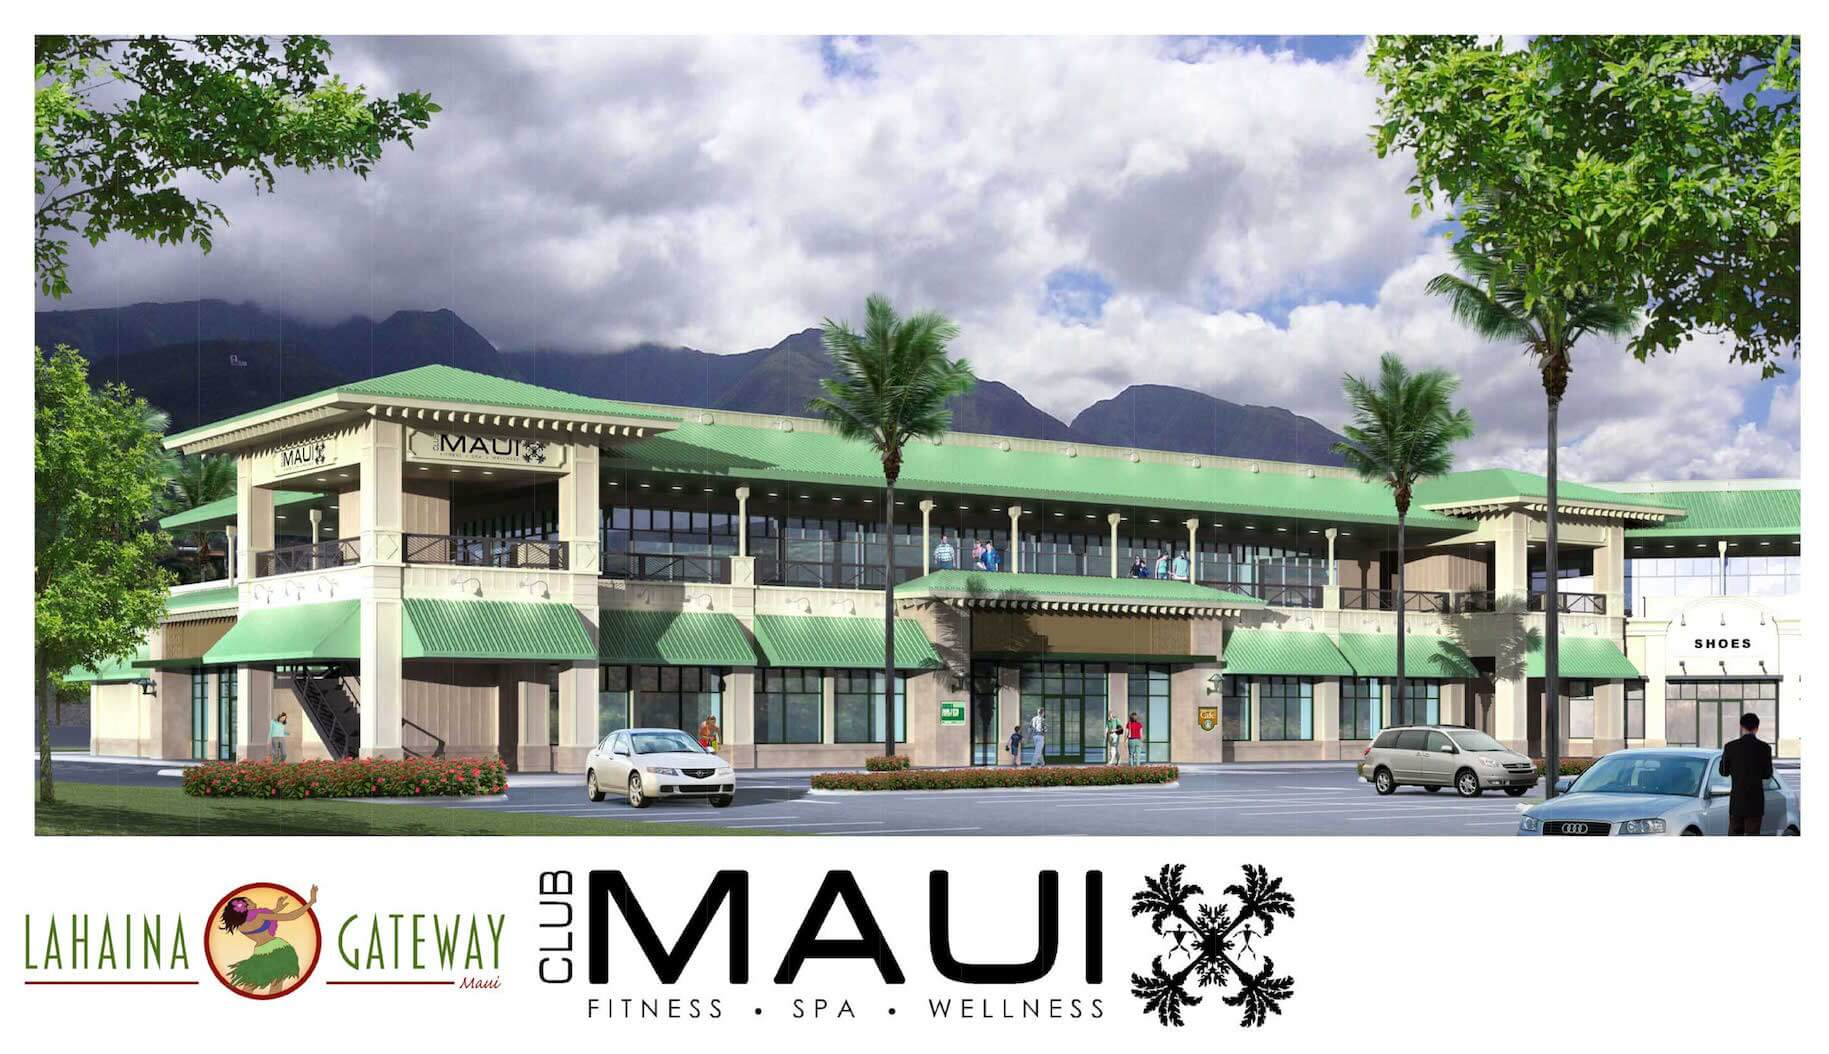 Club Maui Lahaina Gateway Location - Now Open!